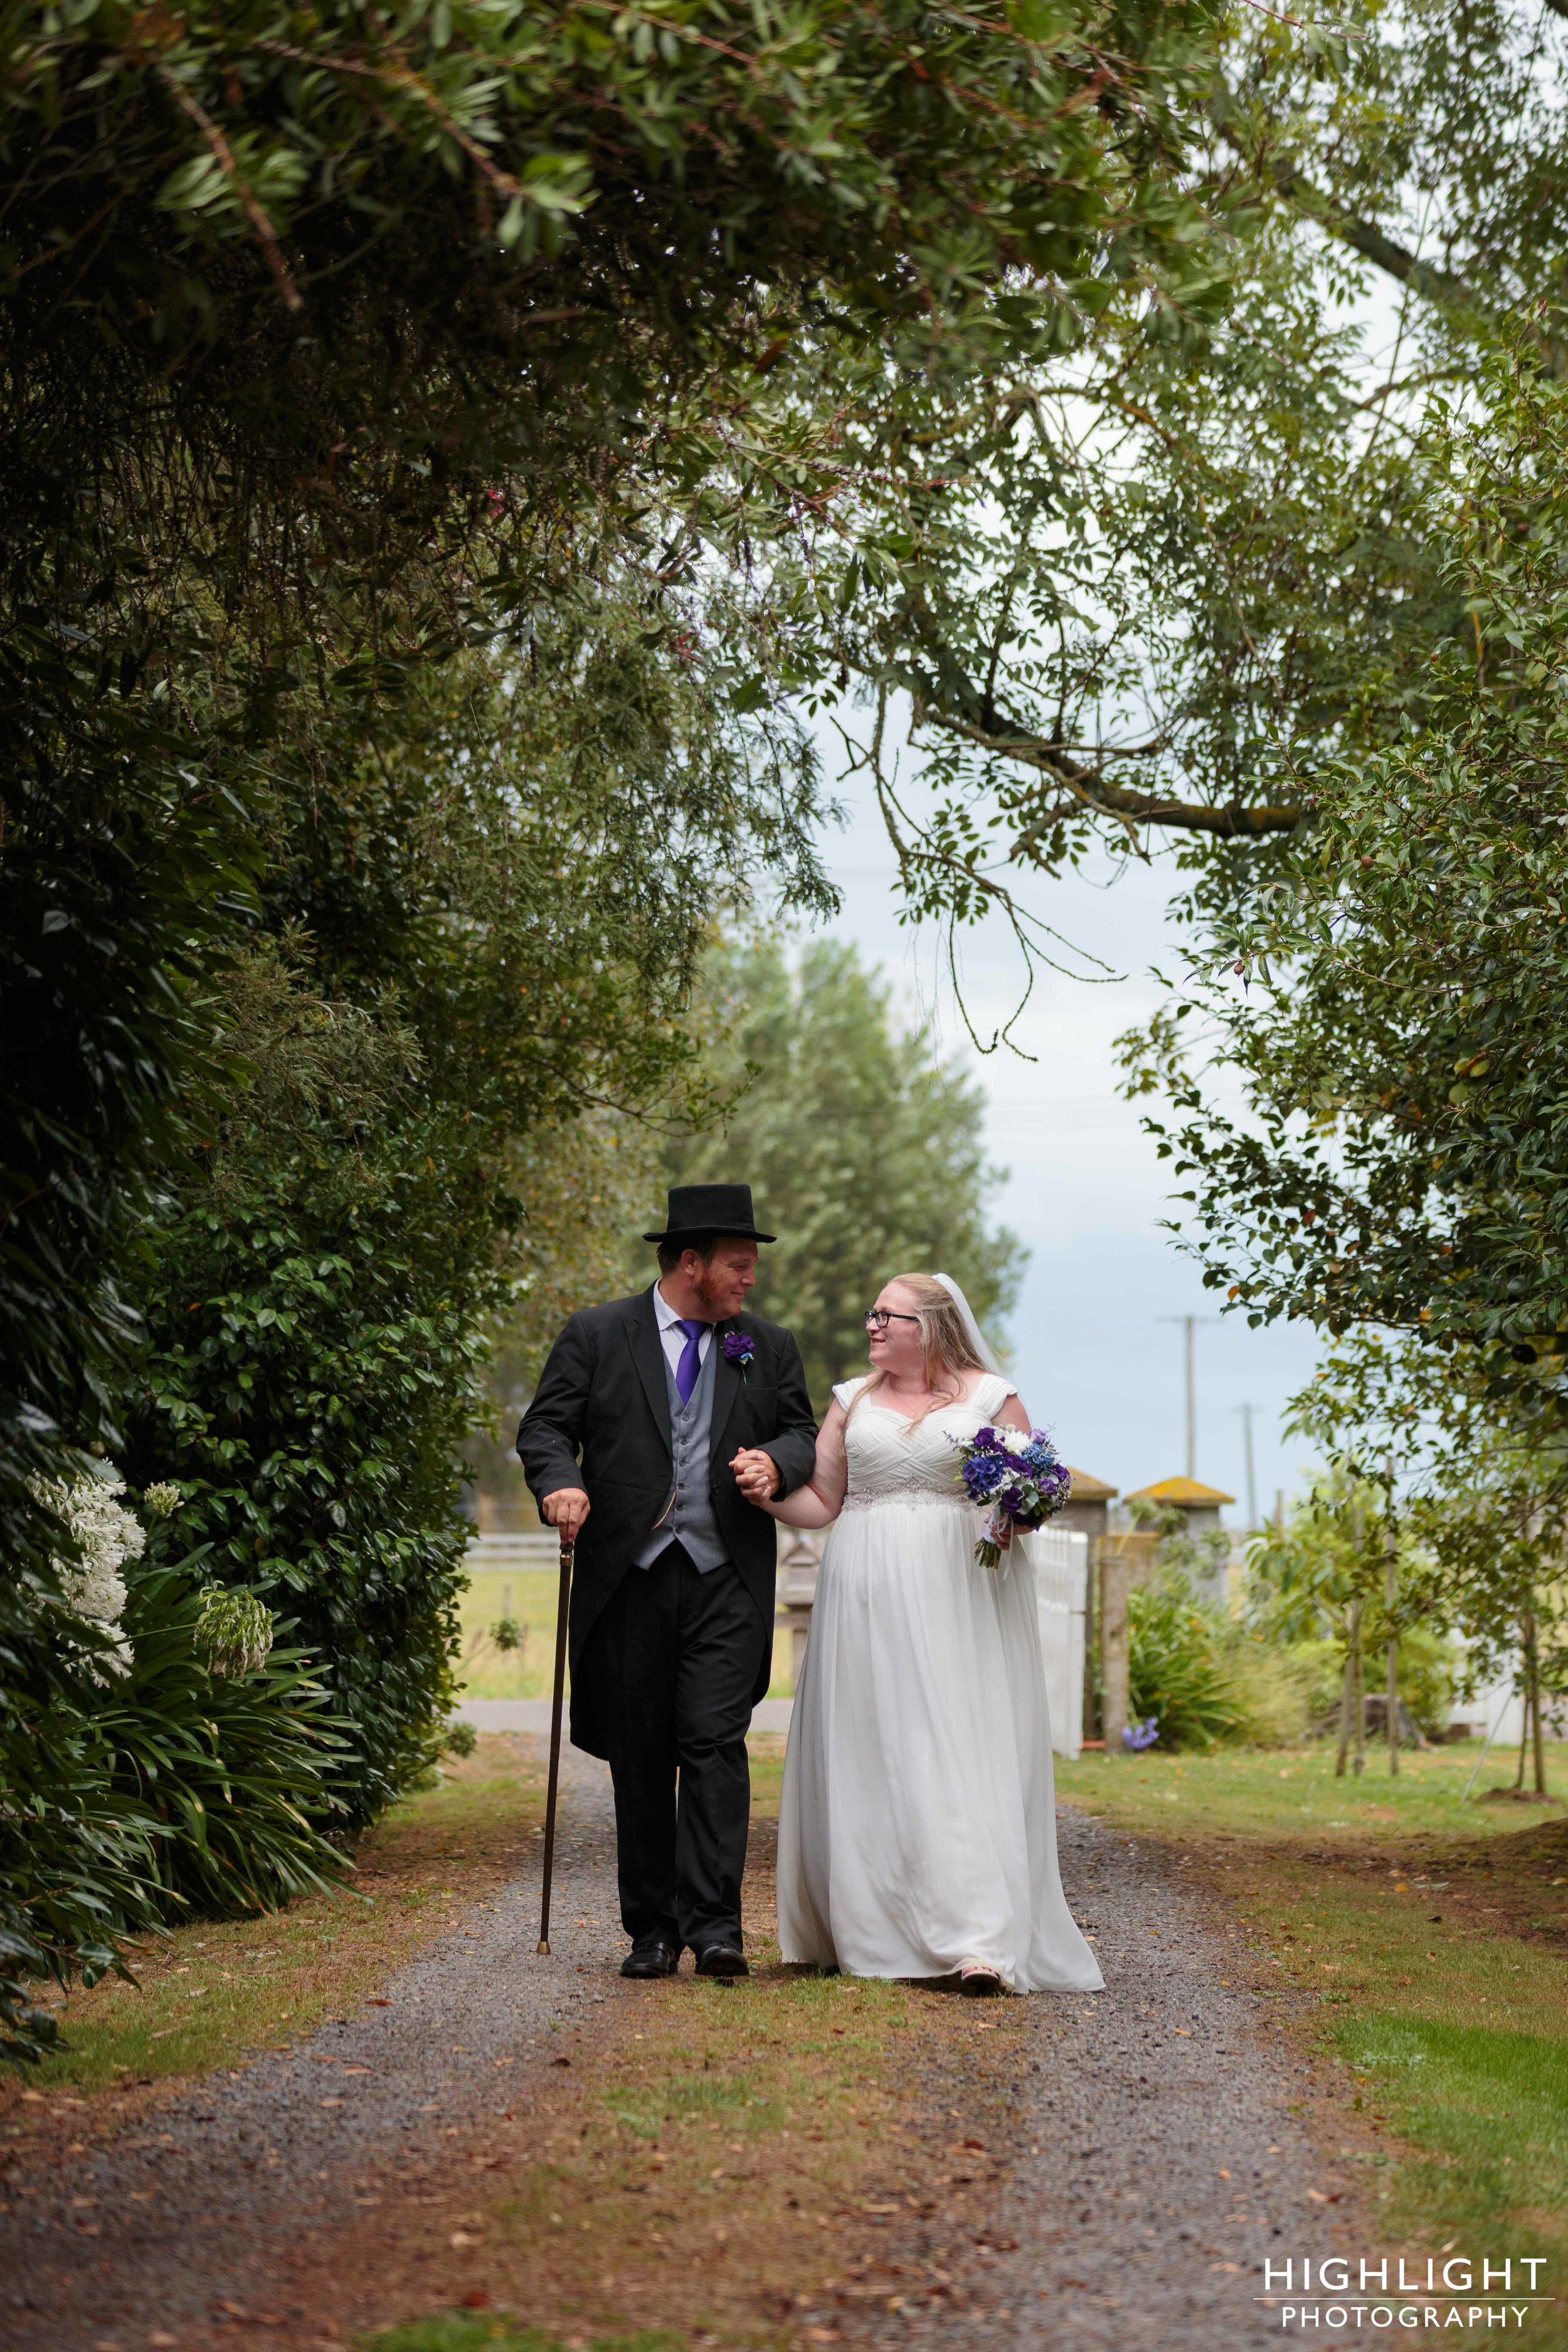 highlight-wedding-photography-new-zealand-palmerston-north-112.jpg